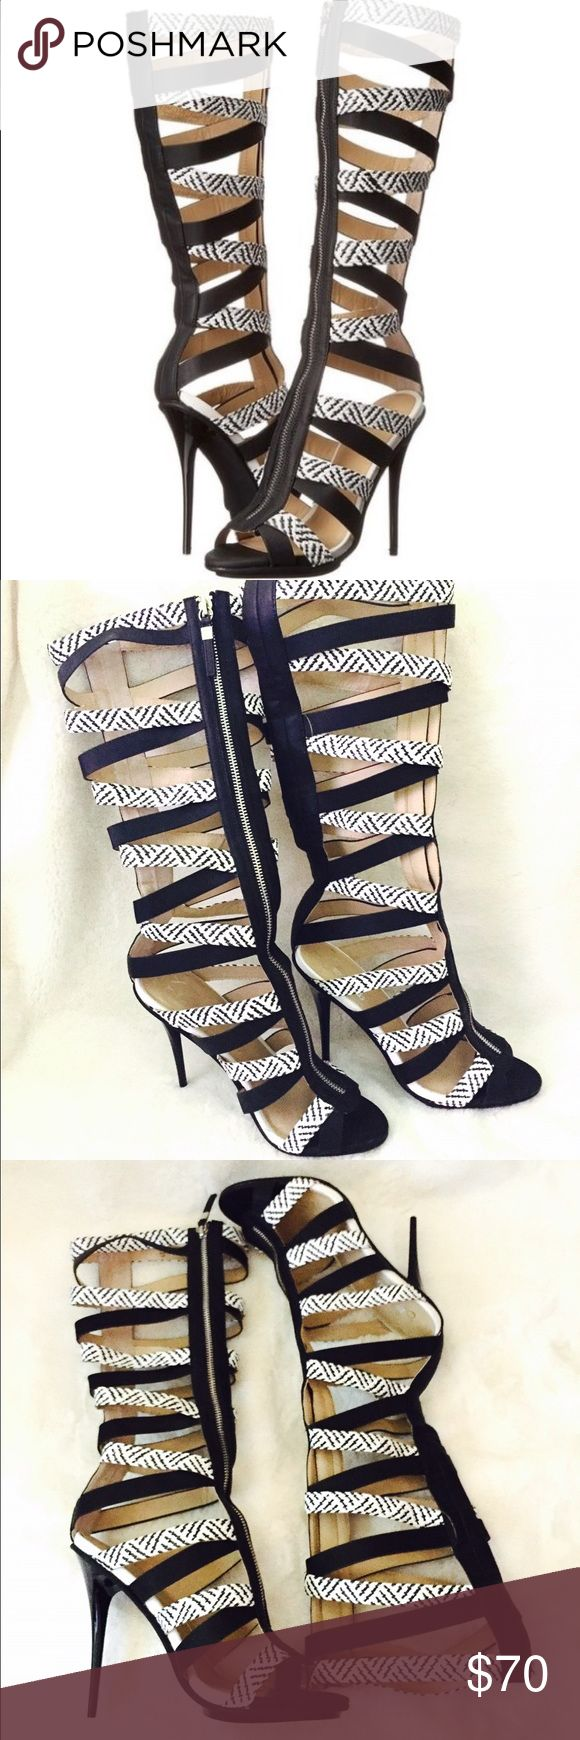 GX by Gwen Stefani Cut Out Zipper Boots These black and white  cut out and woven details heels from GX by Gwen Stefani are sexy, fun and flirtatious boots. The zipper and the open toe design is so fabulous. Has tiny minimal scuff on white leather but other than that these are in excellent used condition. GX by Gwen Stefani Shoes Heeled Boots